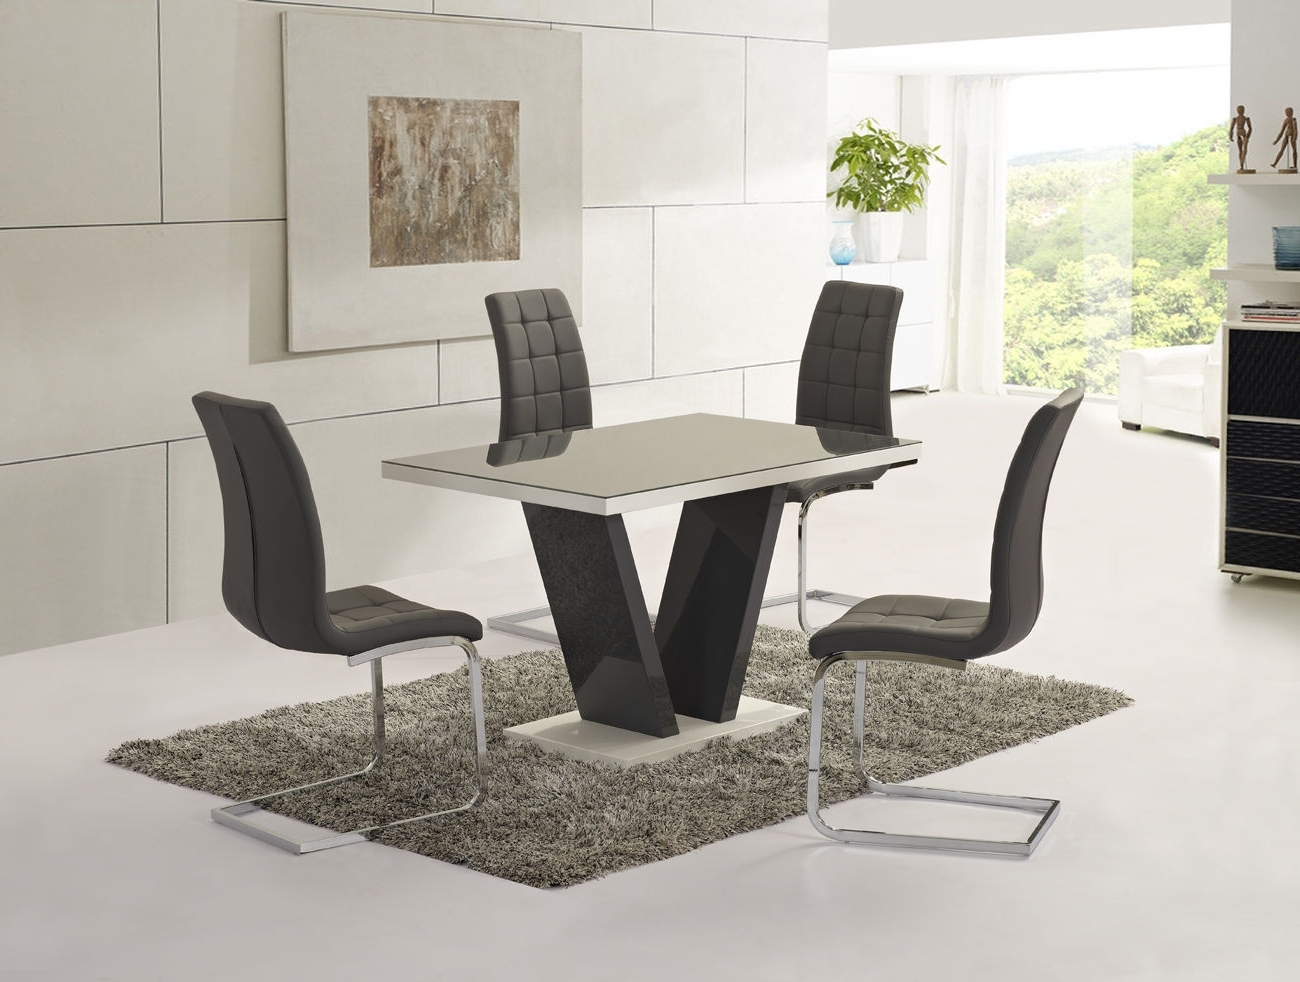 Recent Ga Vico Gloss Grey Glass Top Designer 160Cm Dining Set – 4 6 Grey Within Glass Dining Tables With 6 Chairs (View 18 of 25)